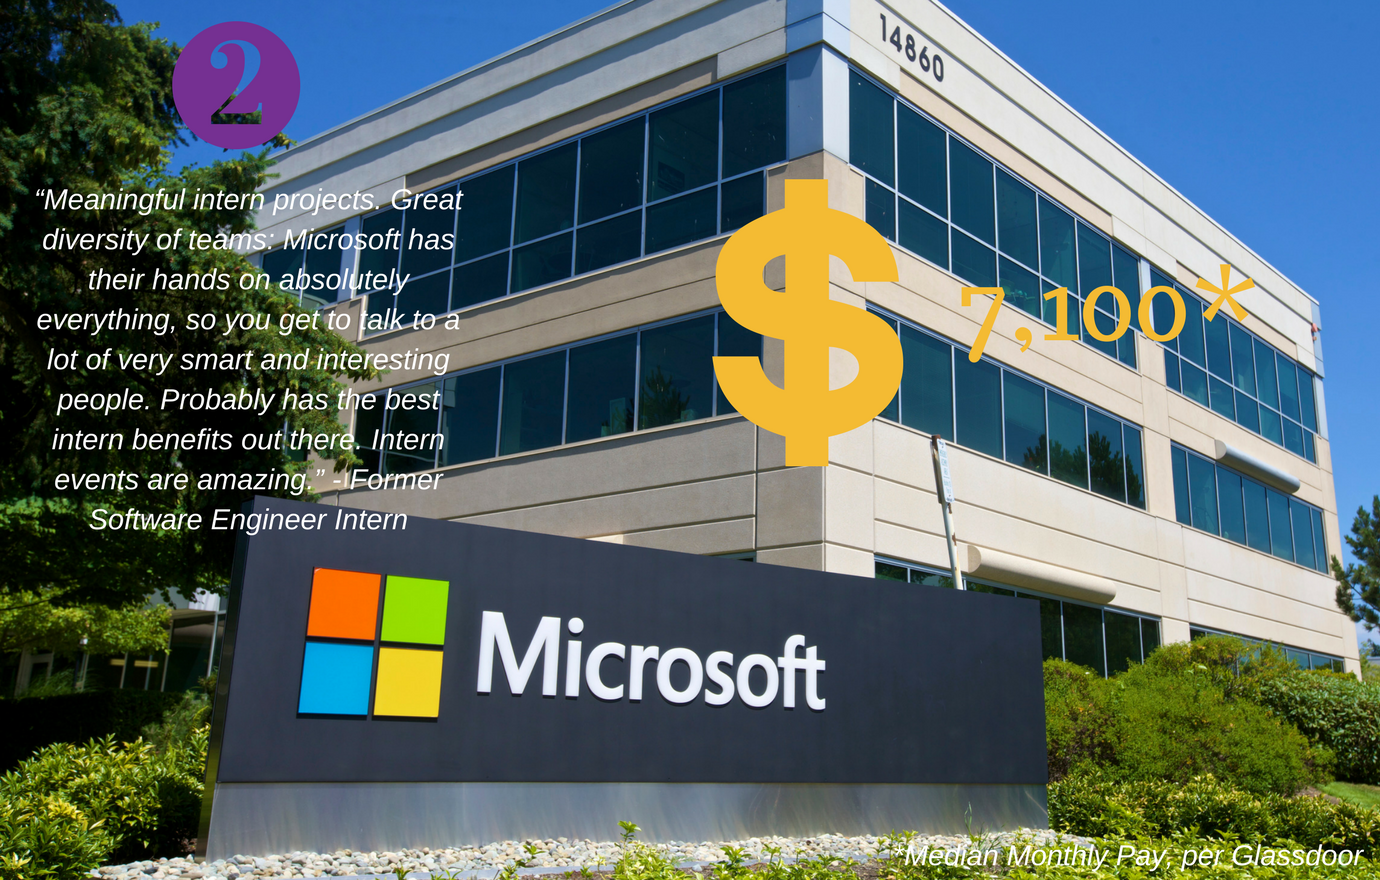 #2: Microsoft. Median Monthly Pay: $7,100 If you aspire to be a software developer and are currently majoring in a technical field like Computer Science, Electrical Engineering, or Computer Engineering, consider Explore Microsoft. (Image: Microsoft)